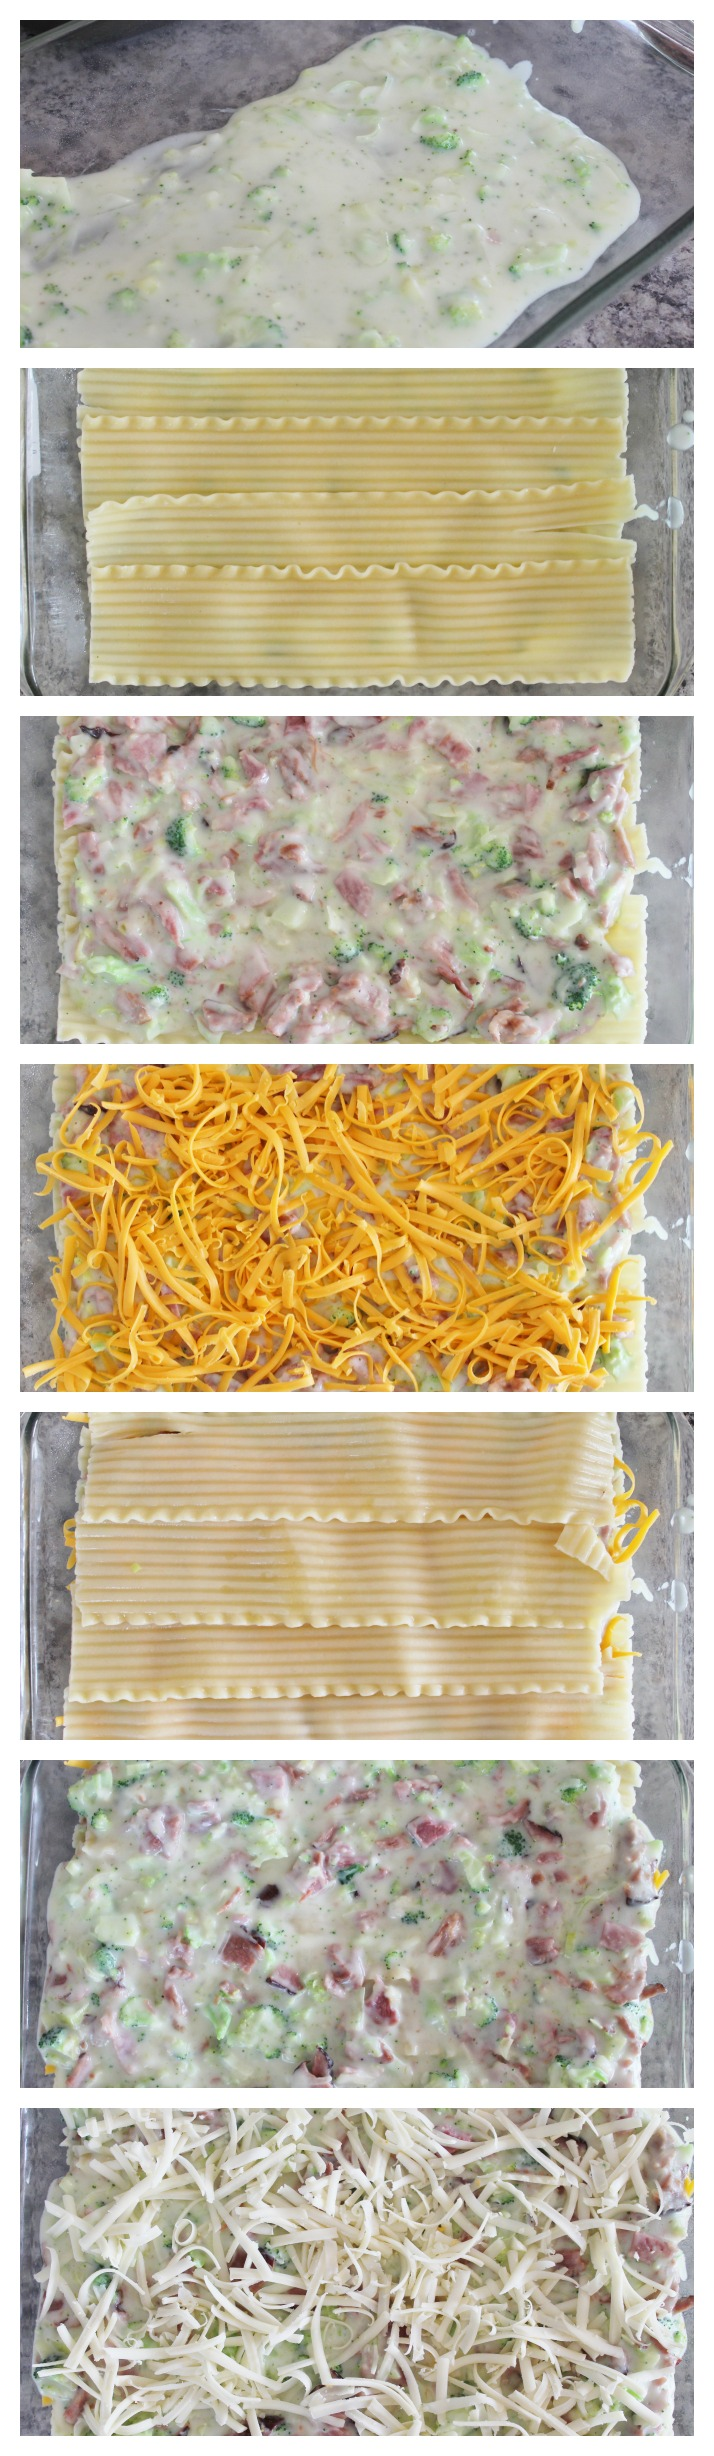 ham lasagna collage